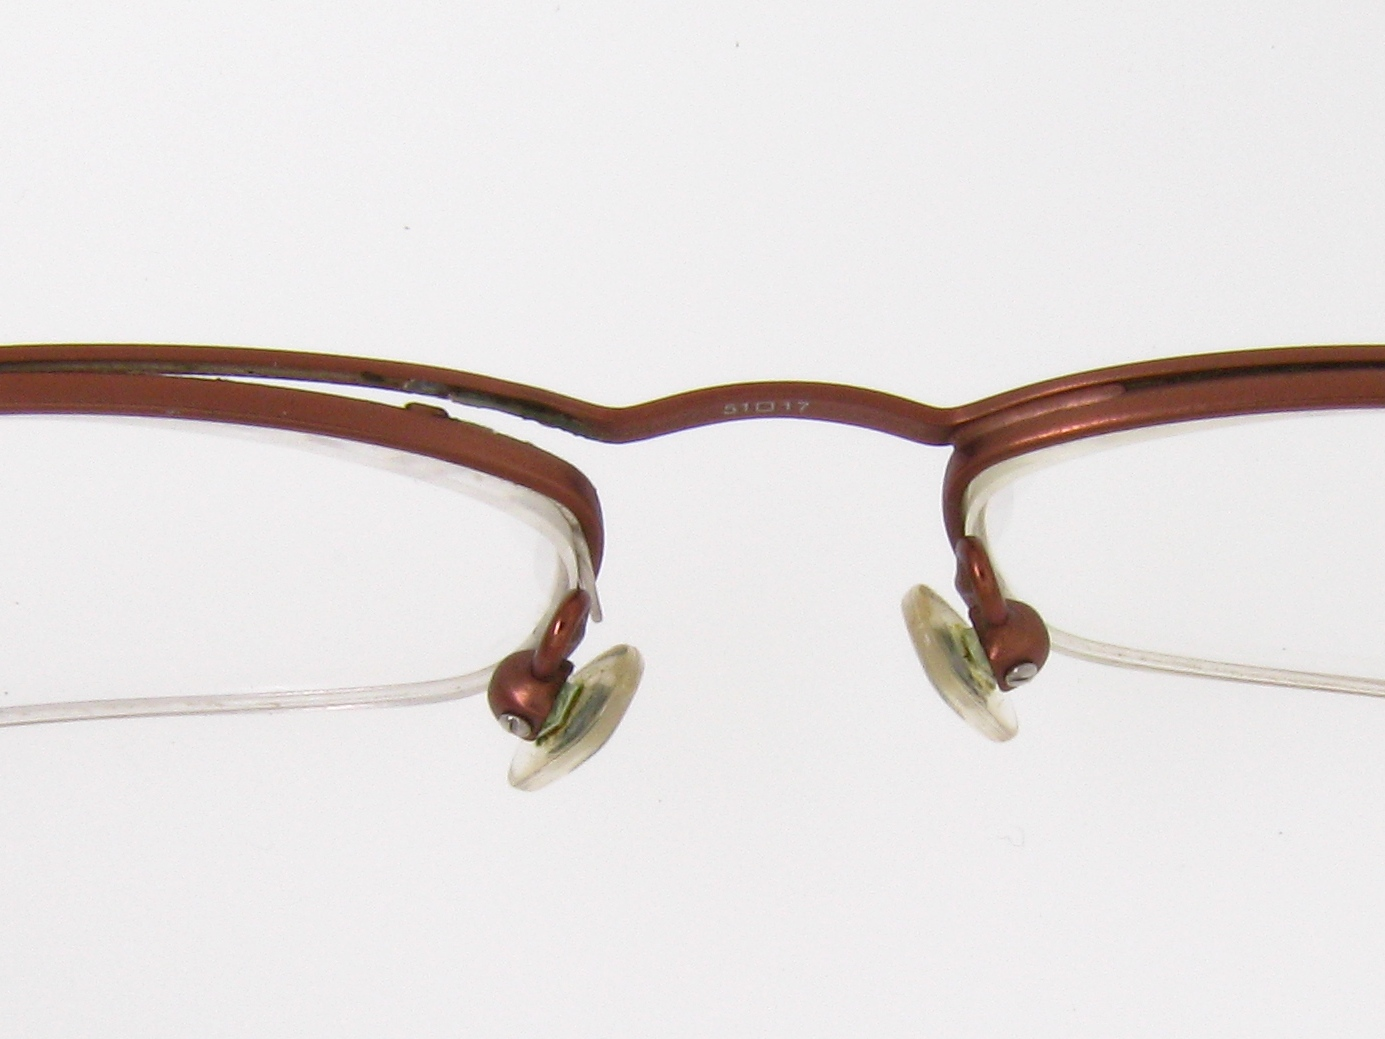 Eyeglass Frame Repair Soldering : Eyeglass Repair Laser Weld Broken Eyeglasses TQ Diamonds